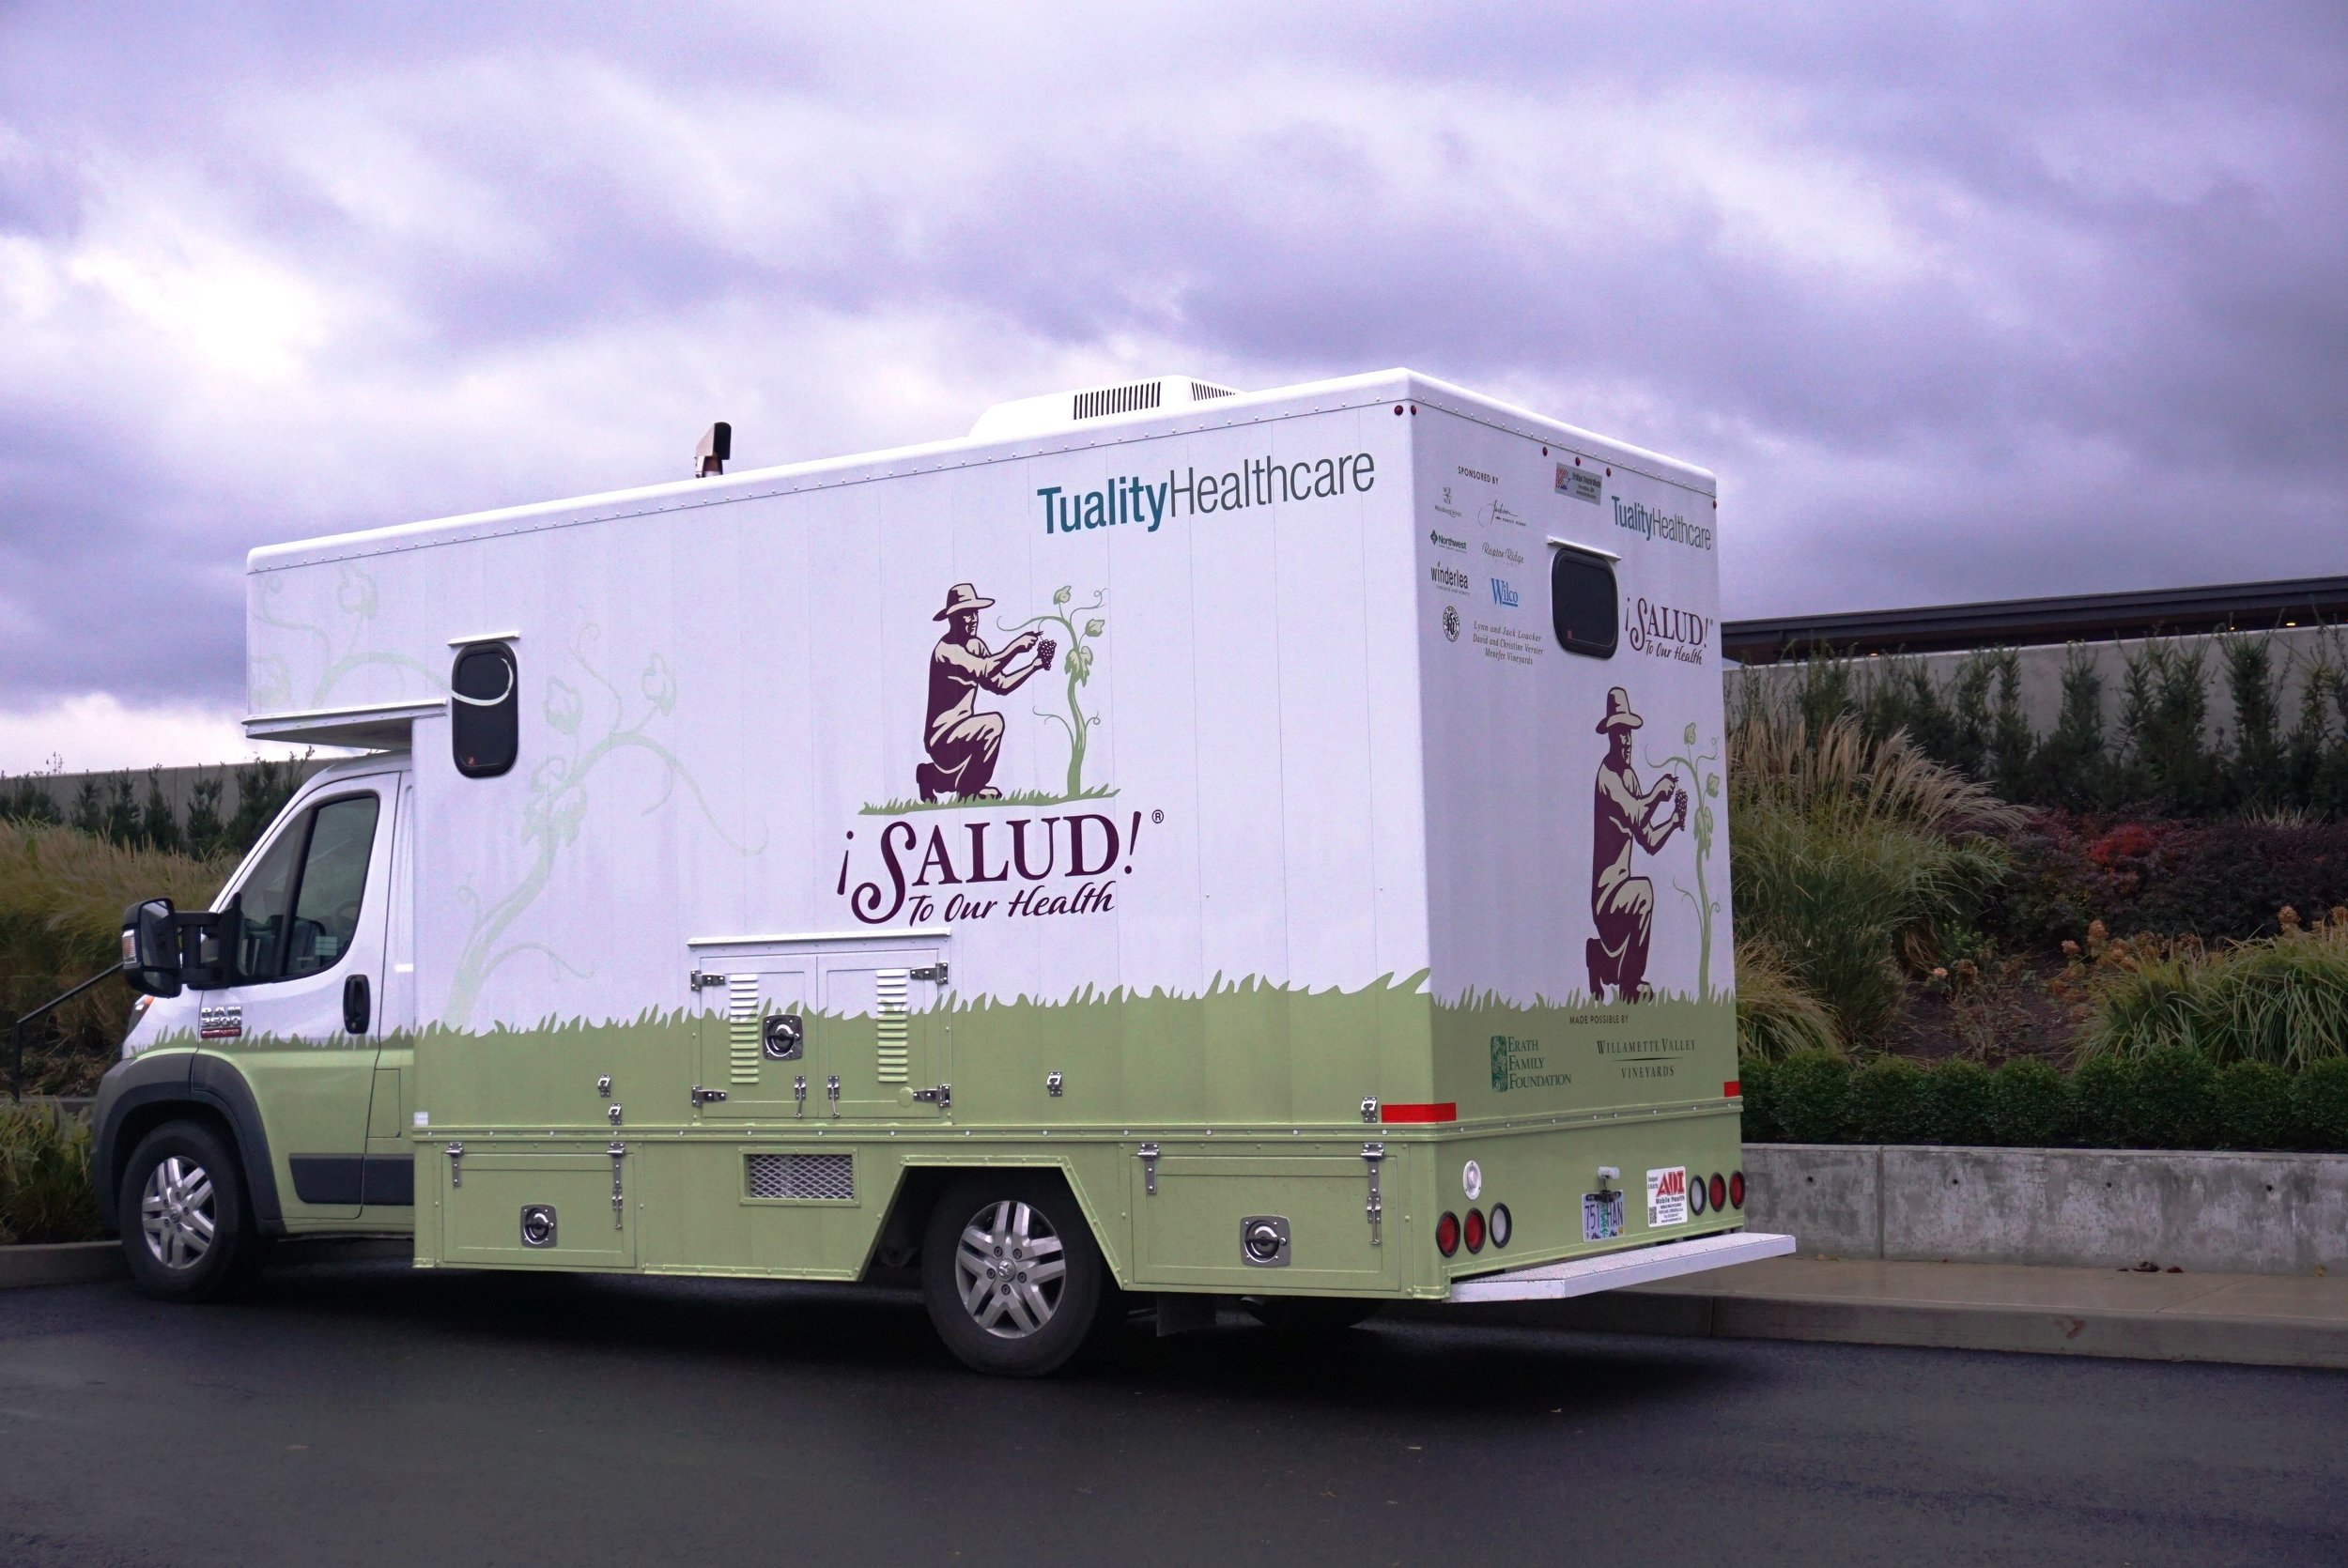 Many of the medical services provided to Willamette Valley vineyard workers through Tuality Healthcare and ¡Salud! are done so via mobile outreach efforts. Viki Eierdam